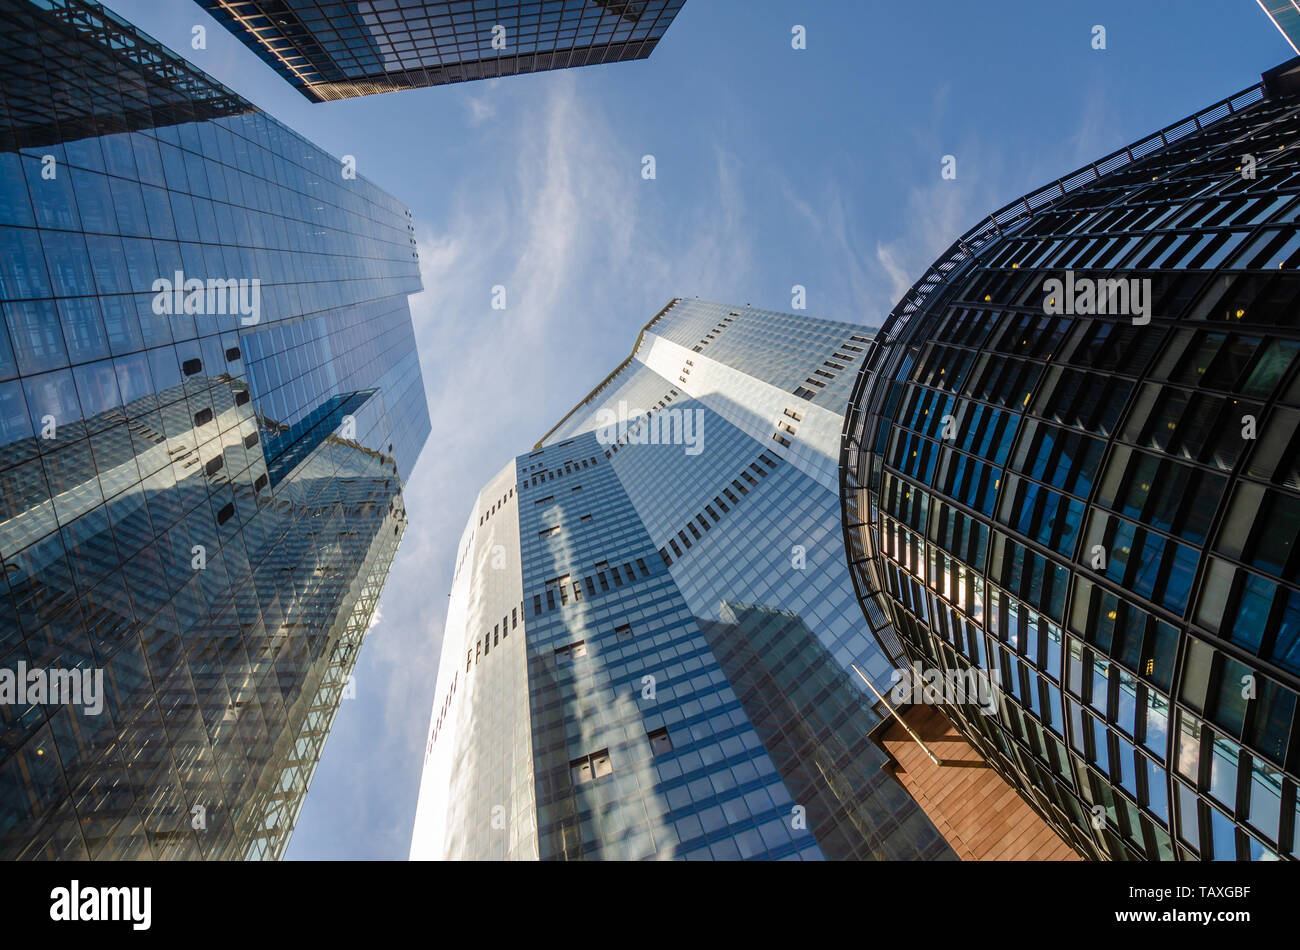 a-view-looking-up-at-skyscrapers-in-the-financial-district-of-the-city-of-london-TAXGBF.jpg